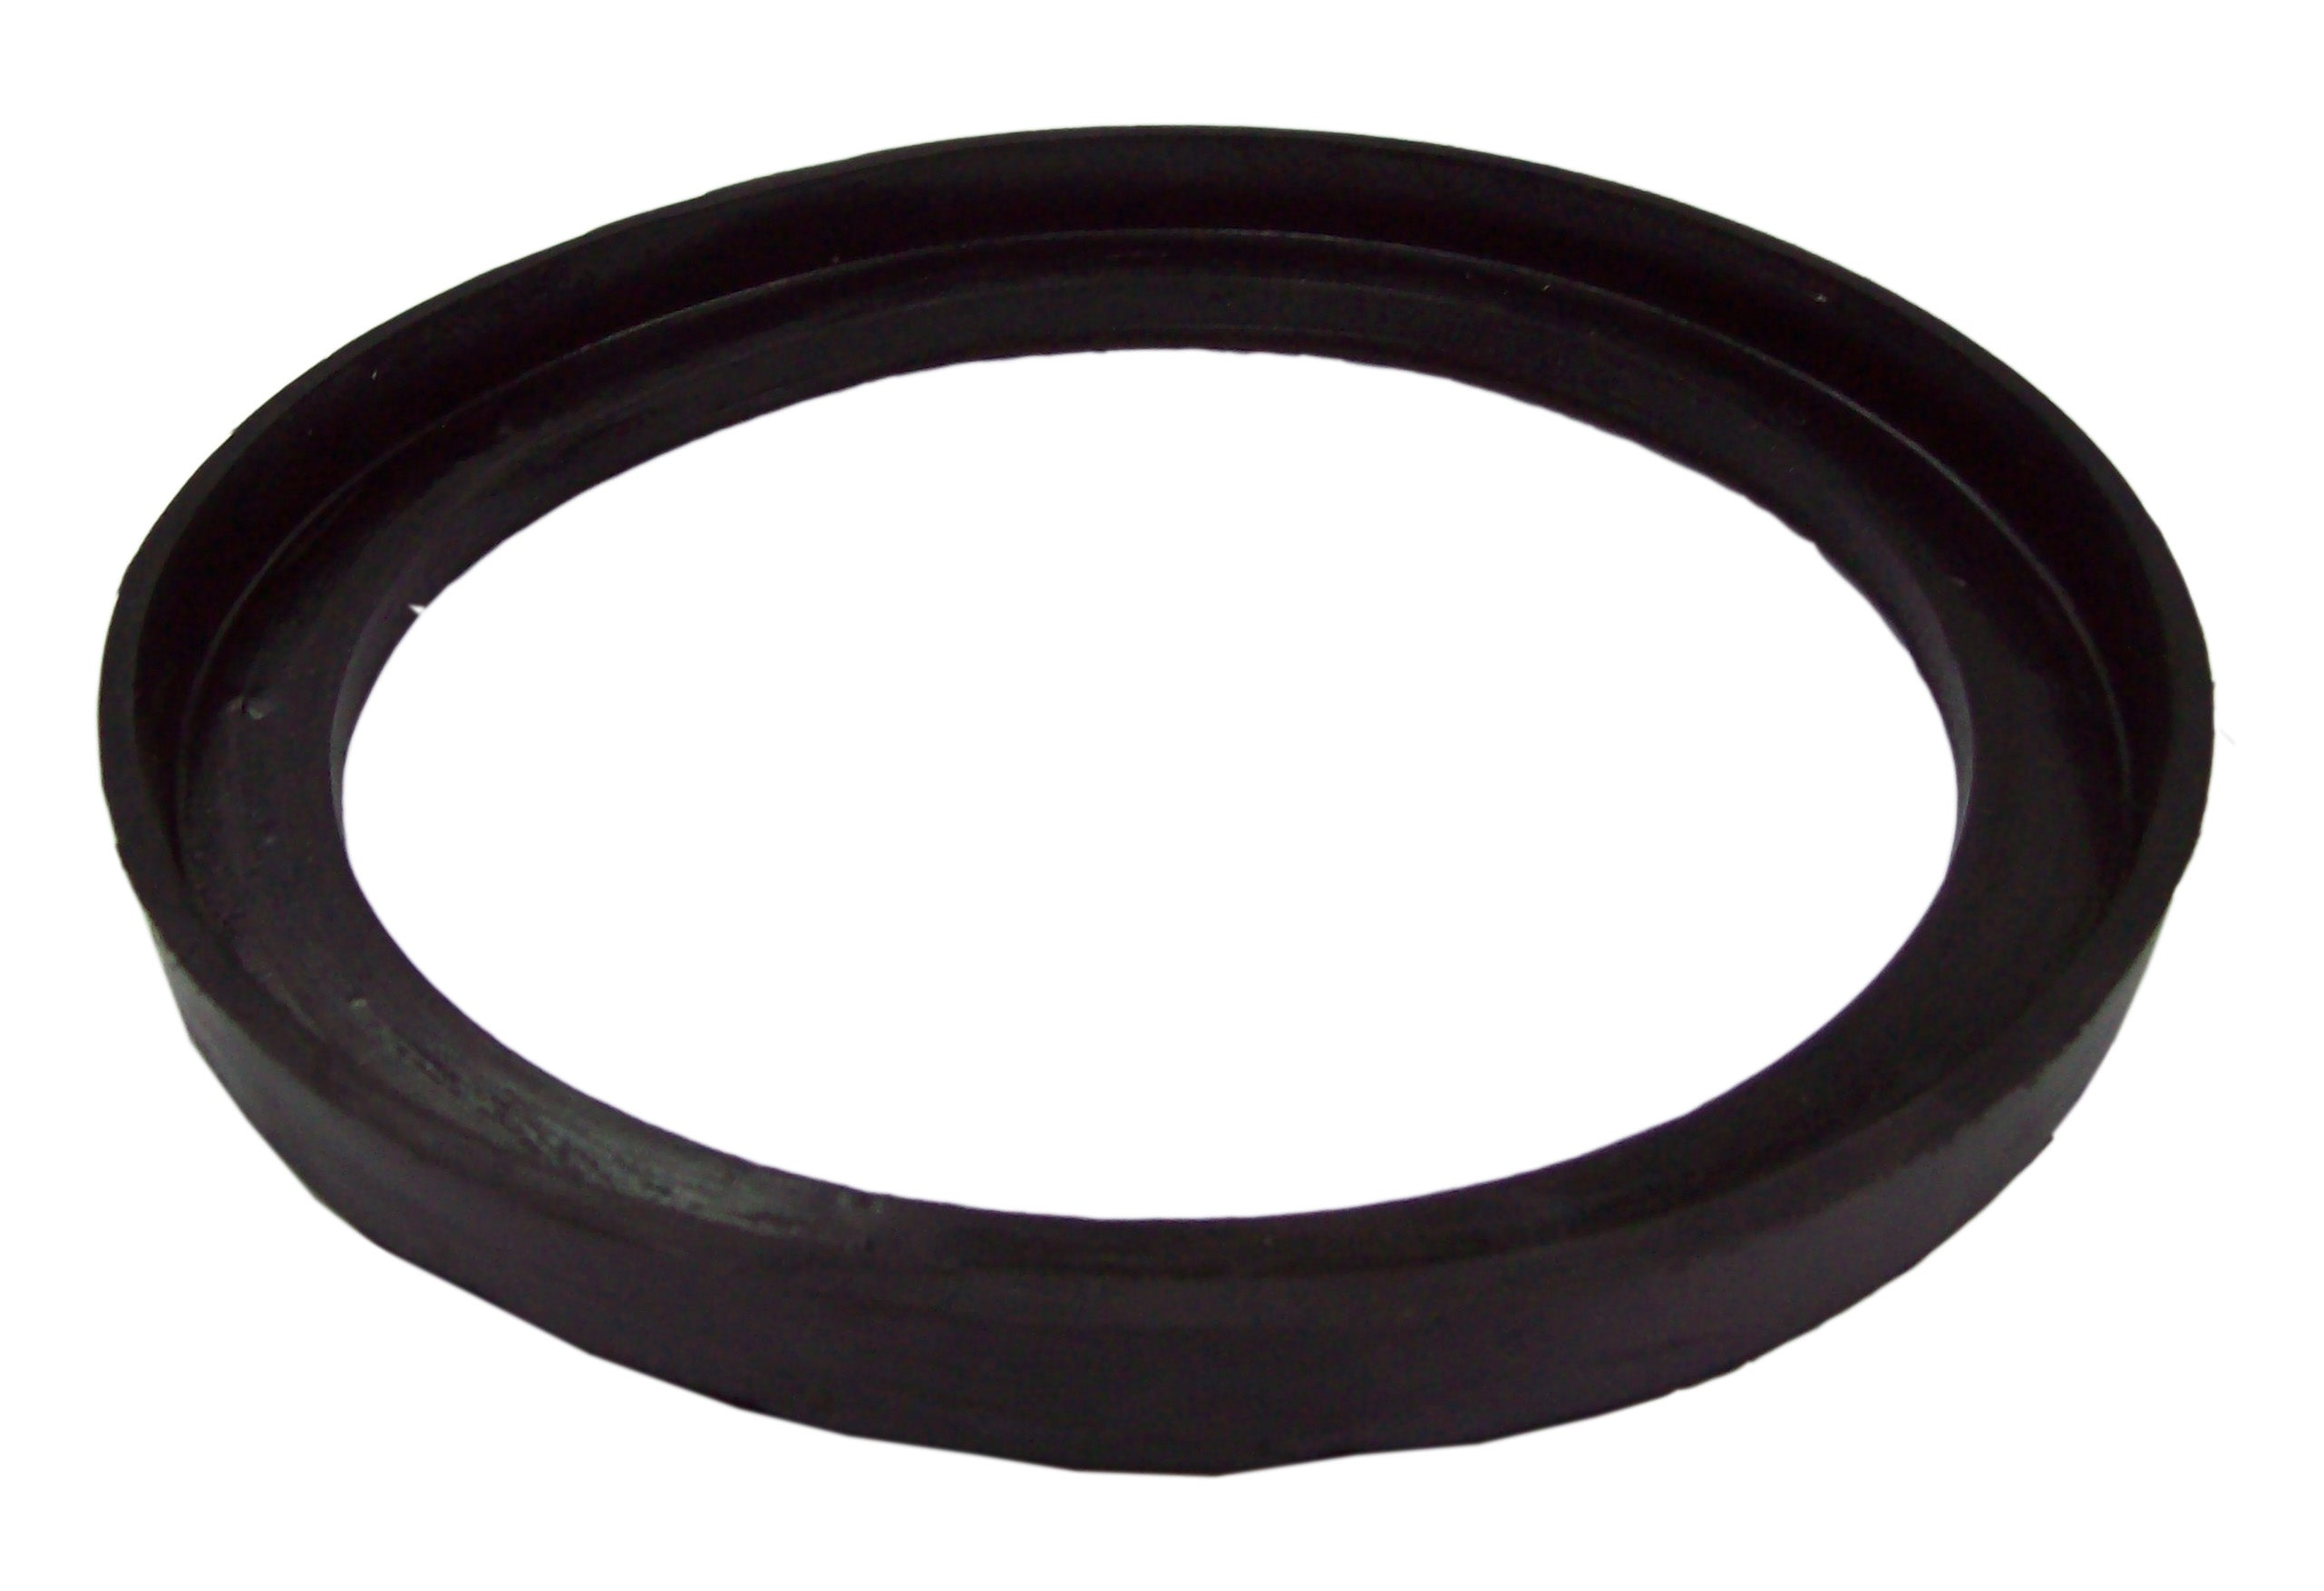 Motor Rubber Hard Gasket for 145mm Motors